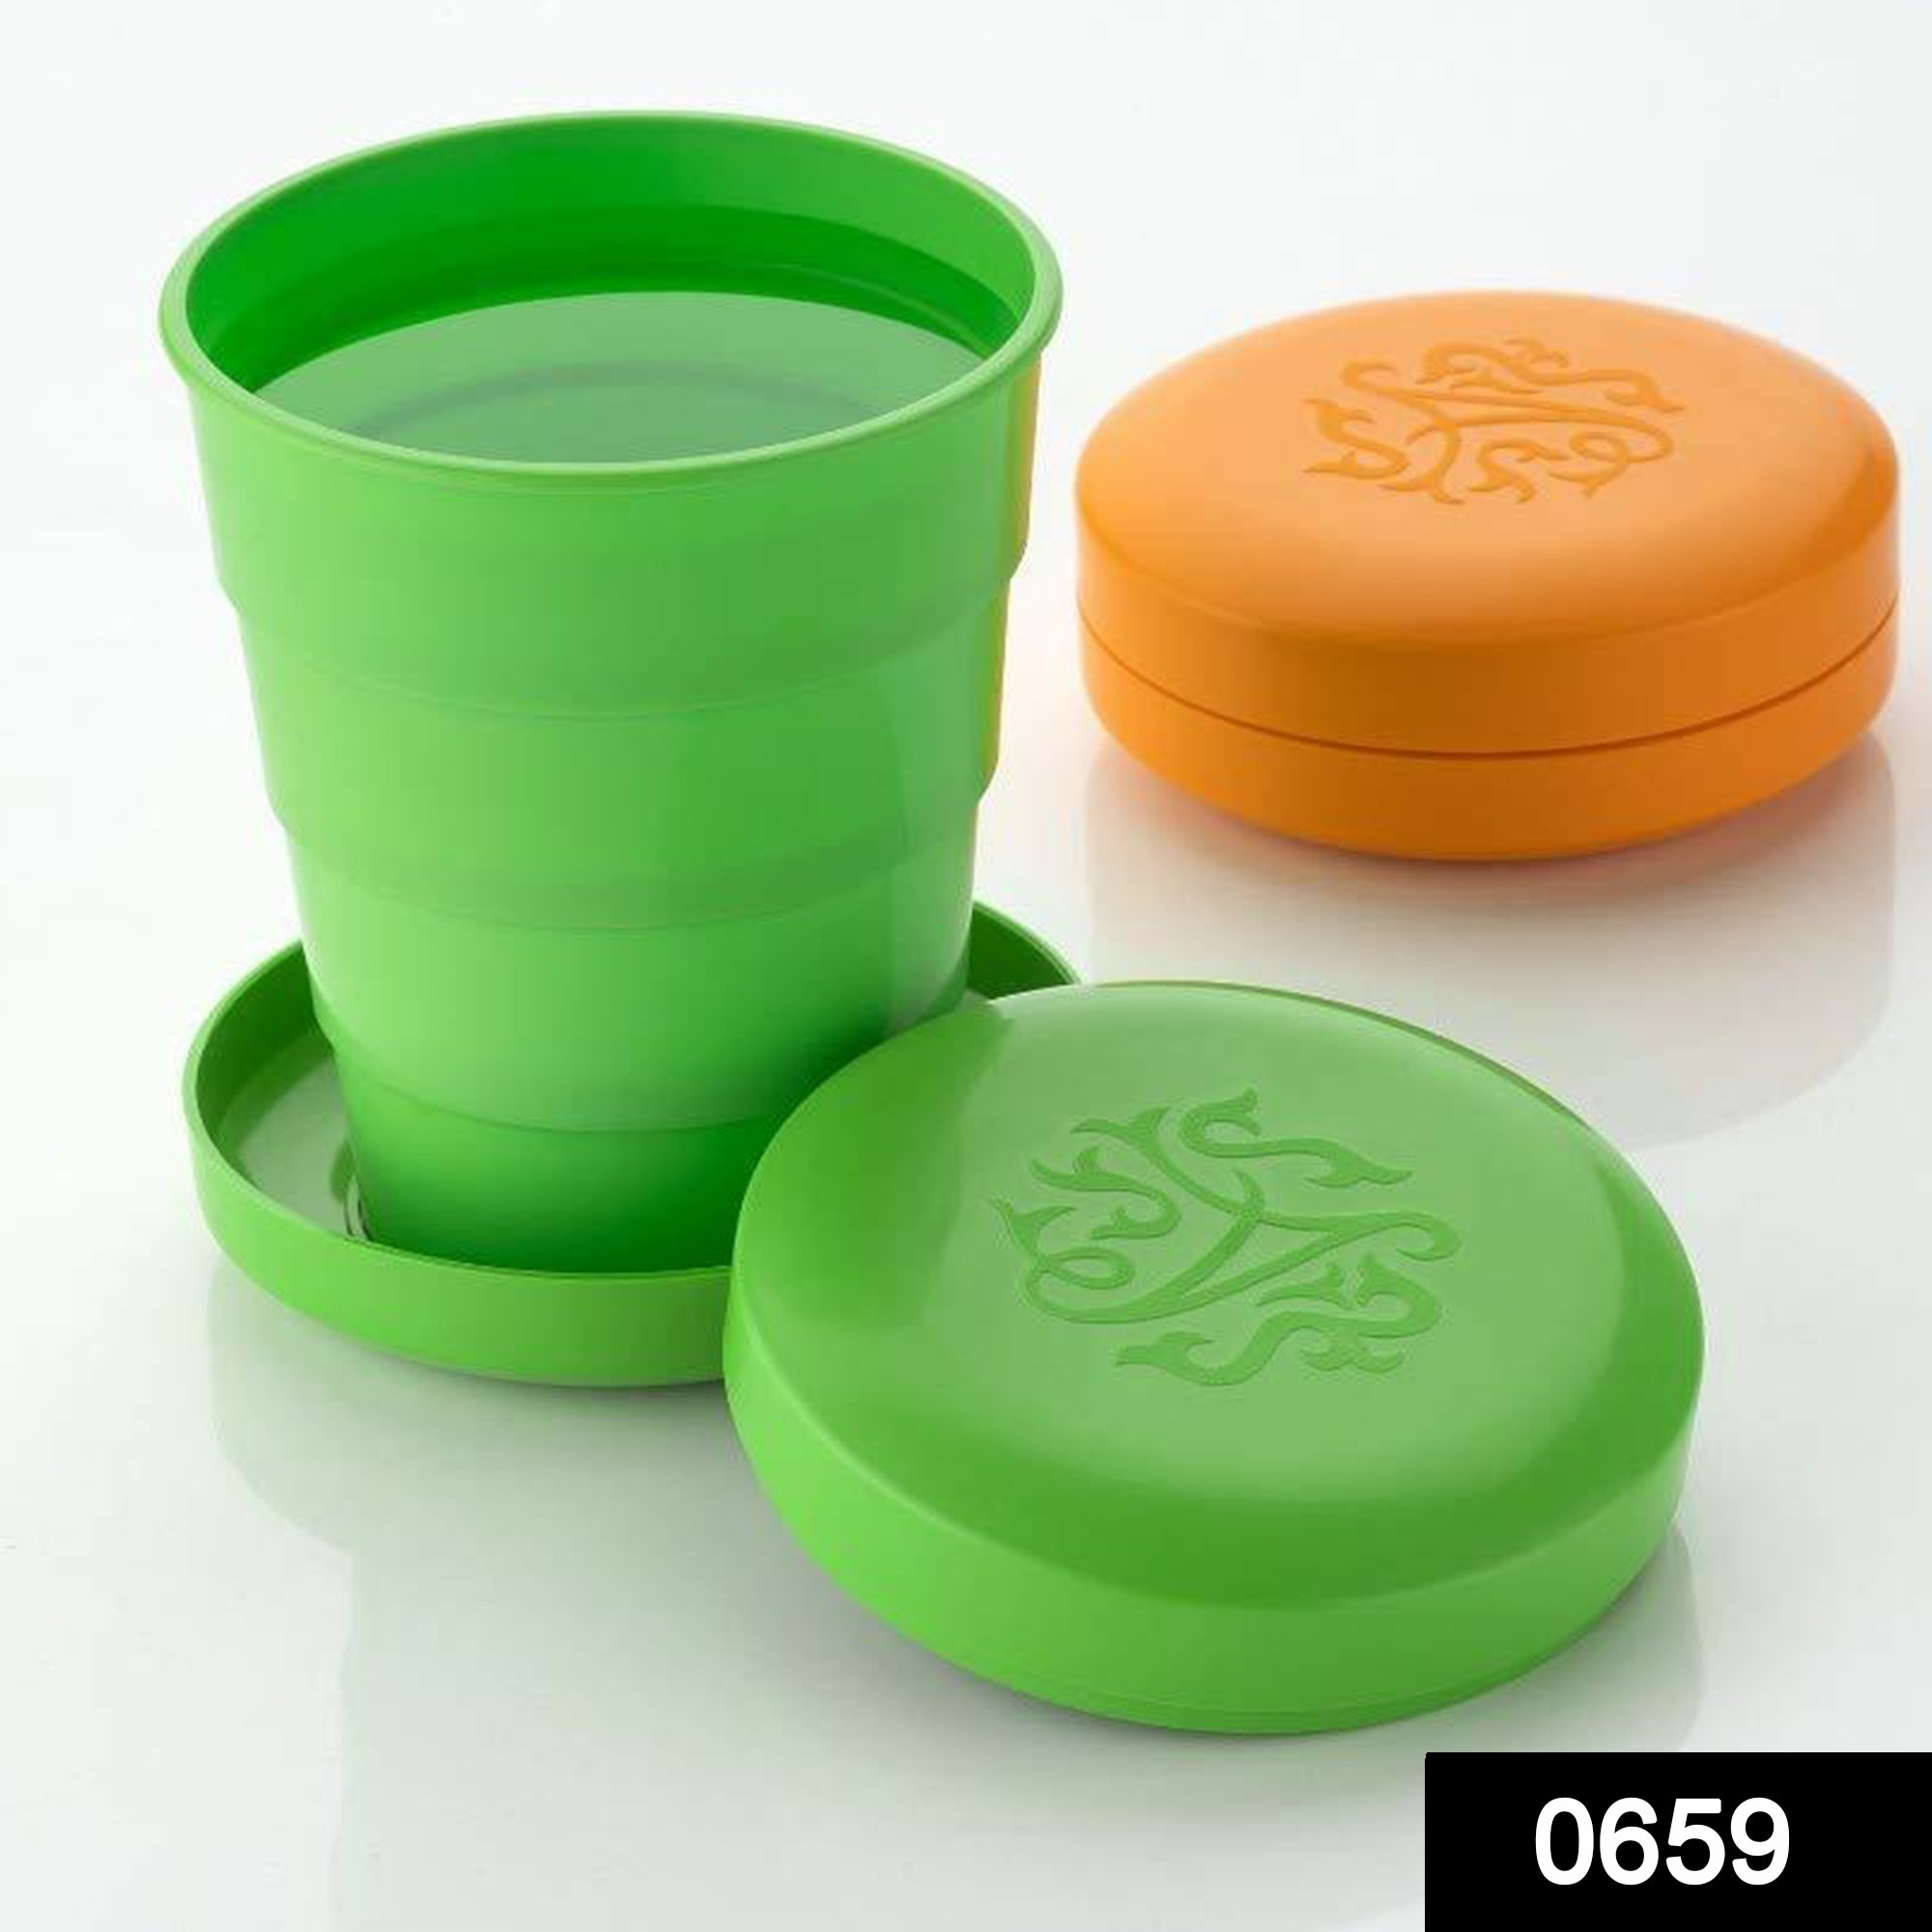 0659 Portable Travelling Cup/Tumbler With Lid -